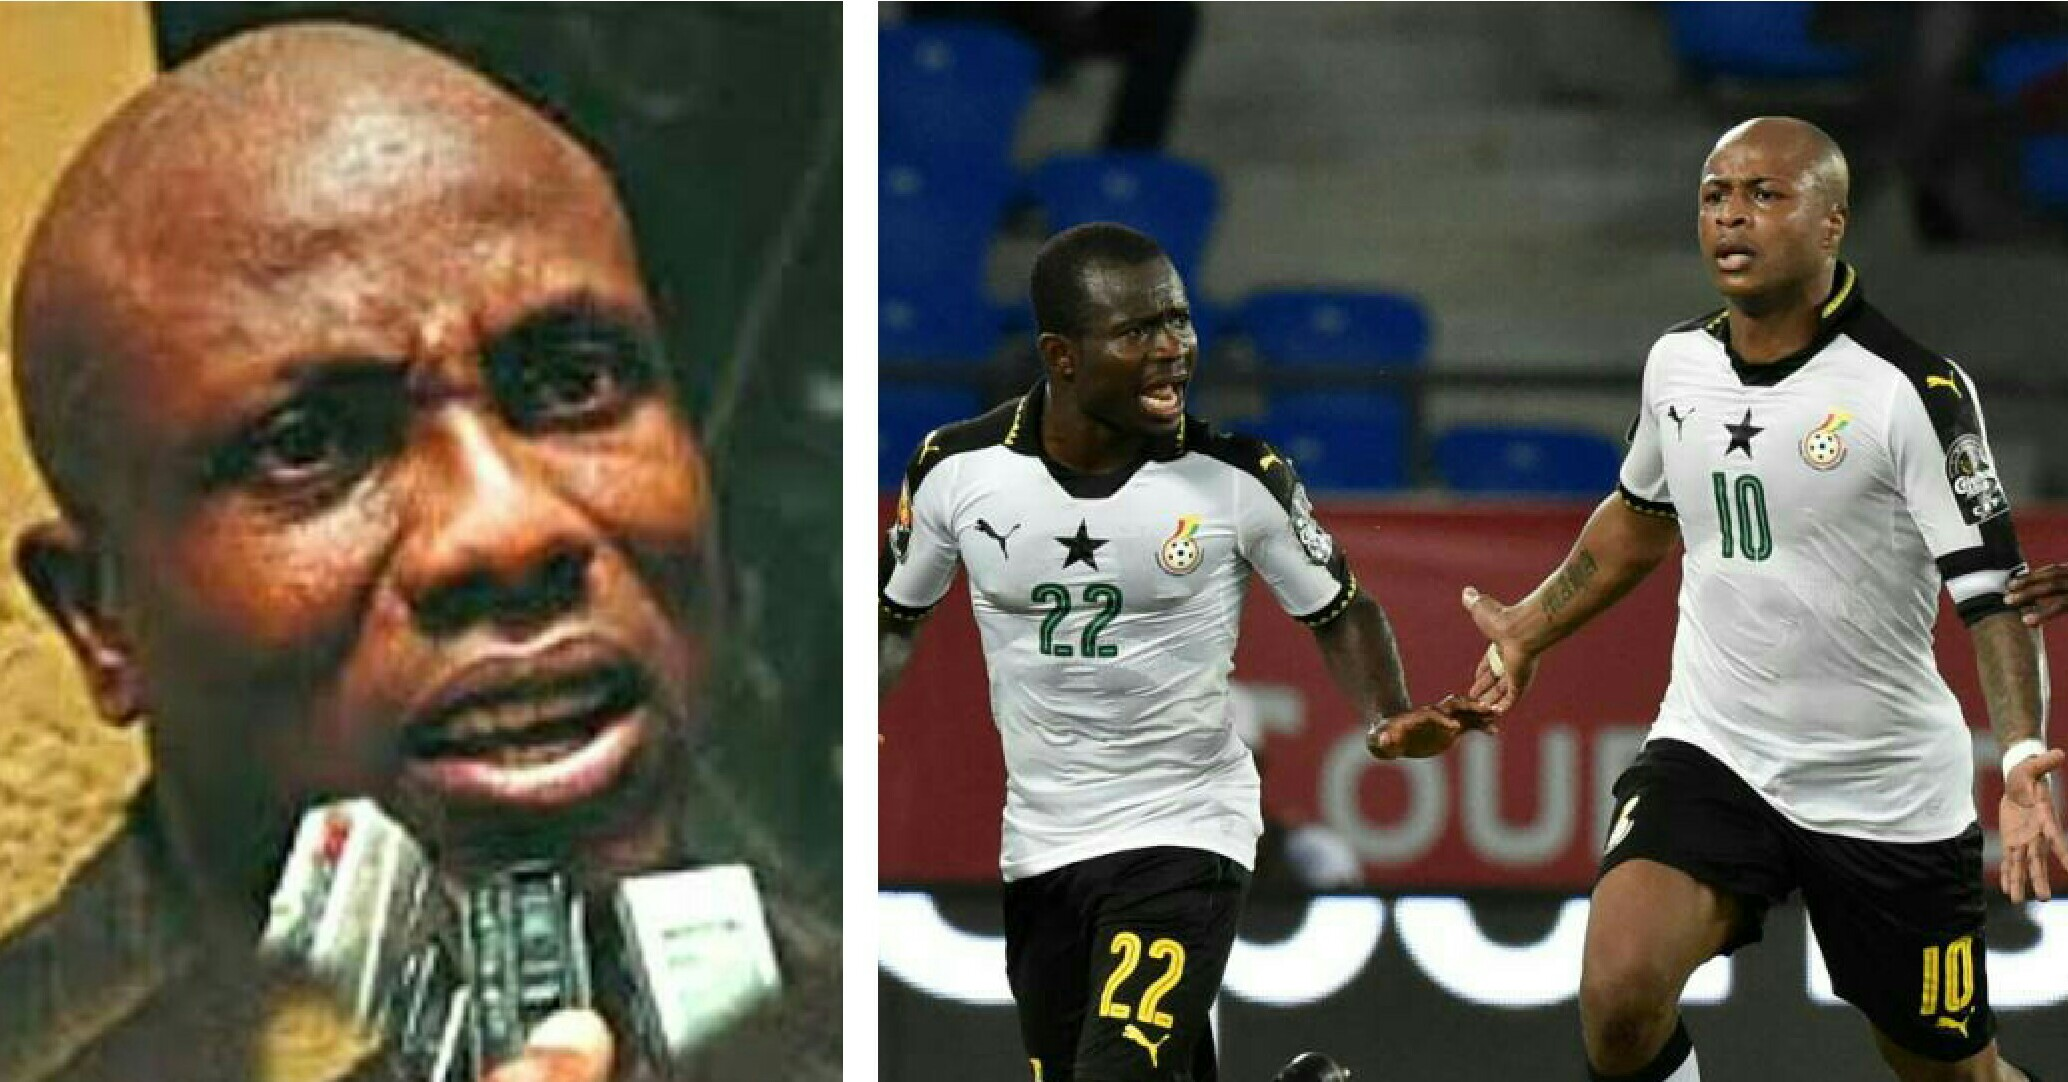 Esin: I Pick Ghana Over Cameroon For AFCON Final